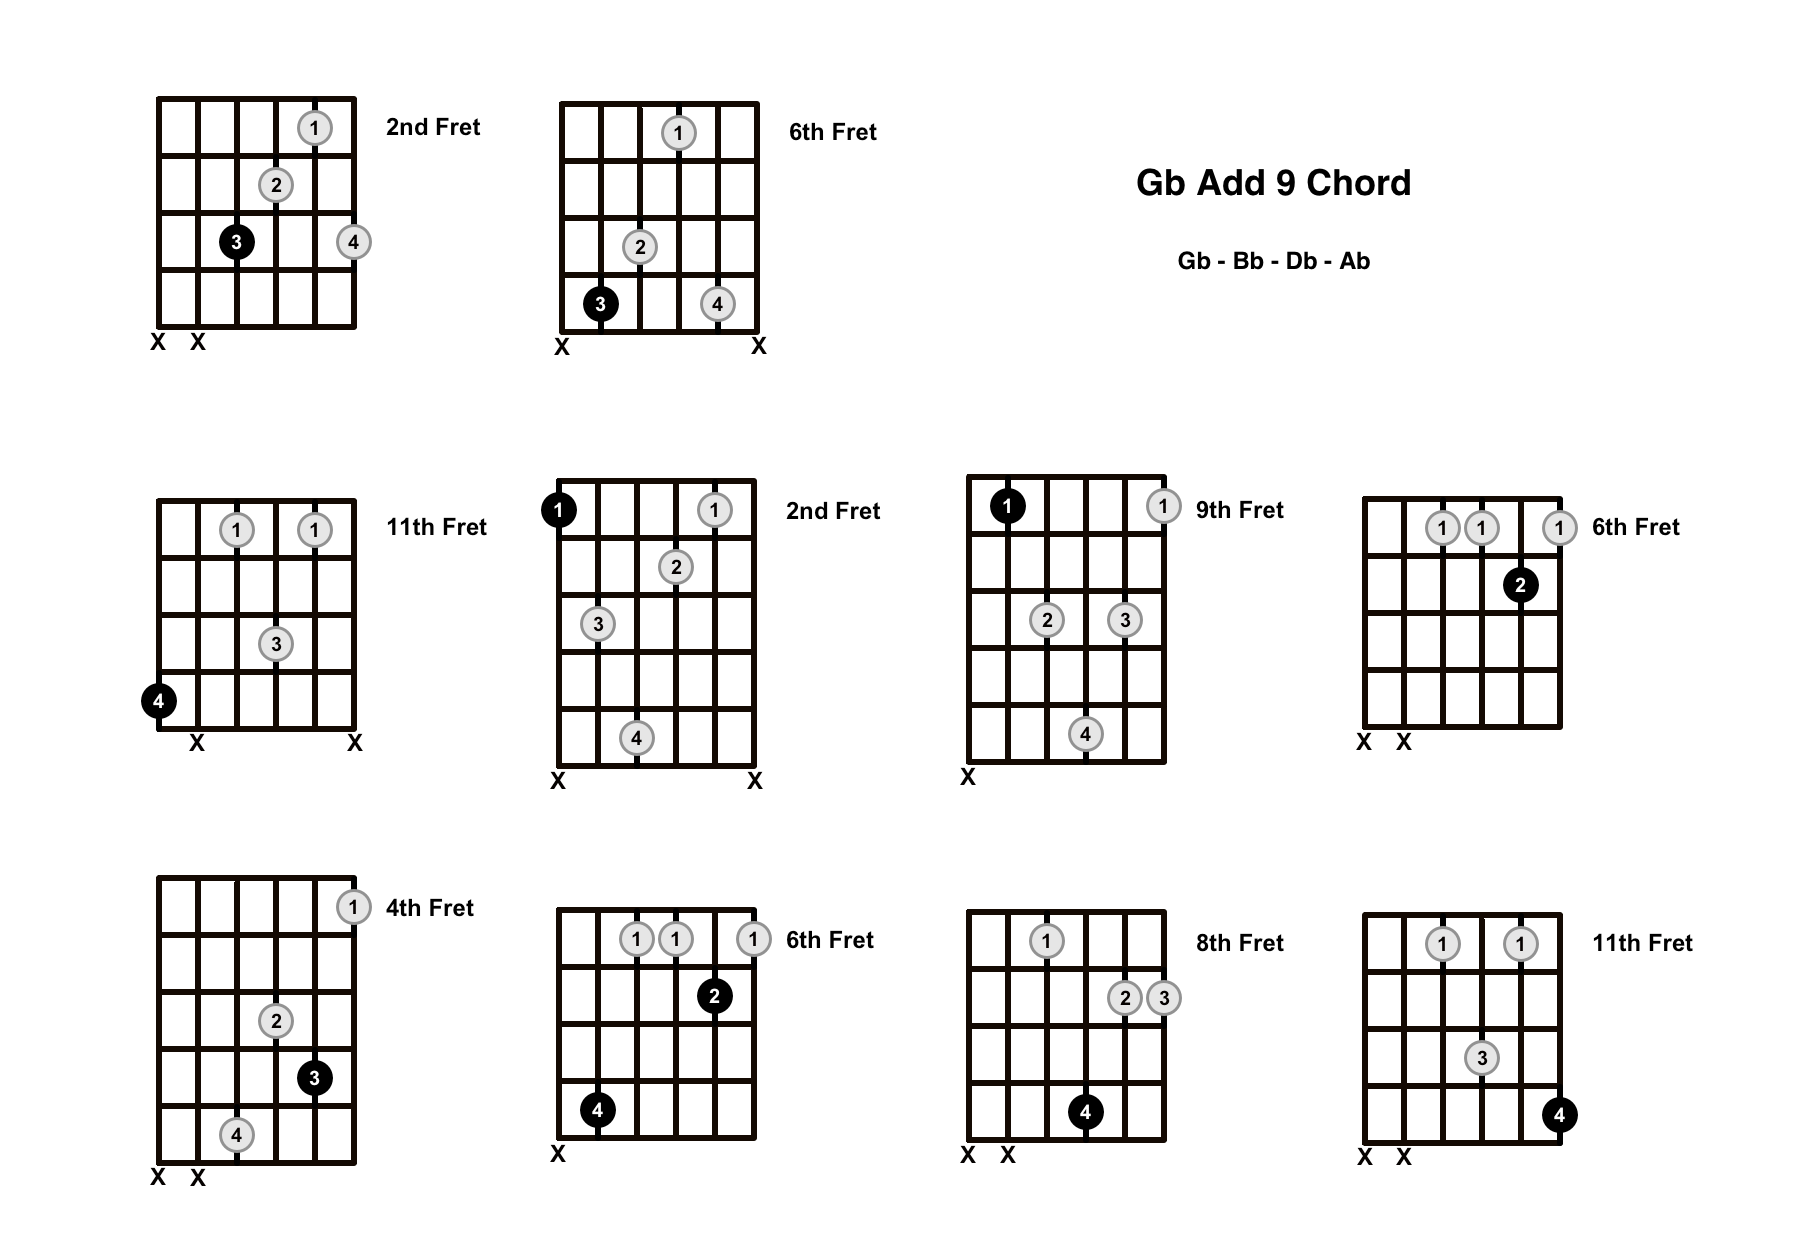 Gb Add 9 Chord On The Guitar (G Flat Add 9/G Flat Add 2) – Diagrams, Finger Positions and Theory